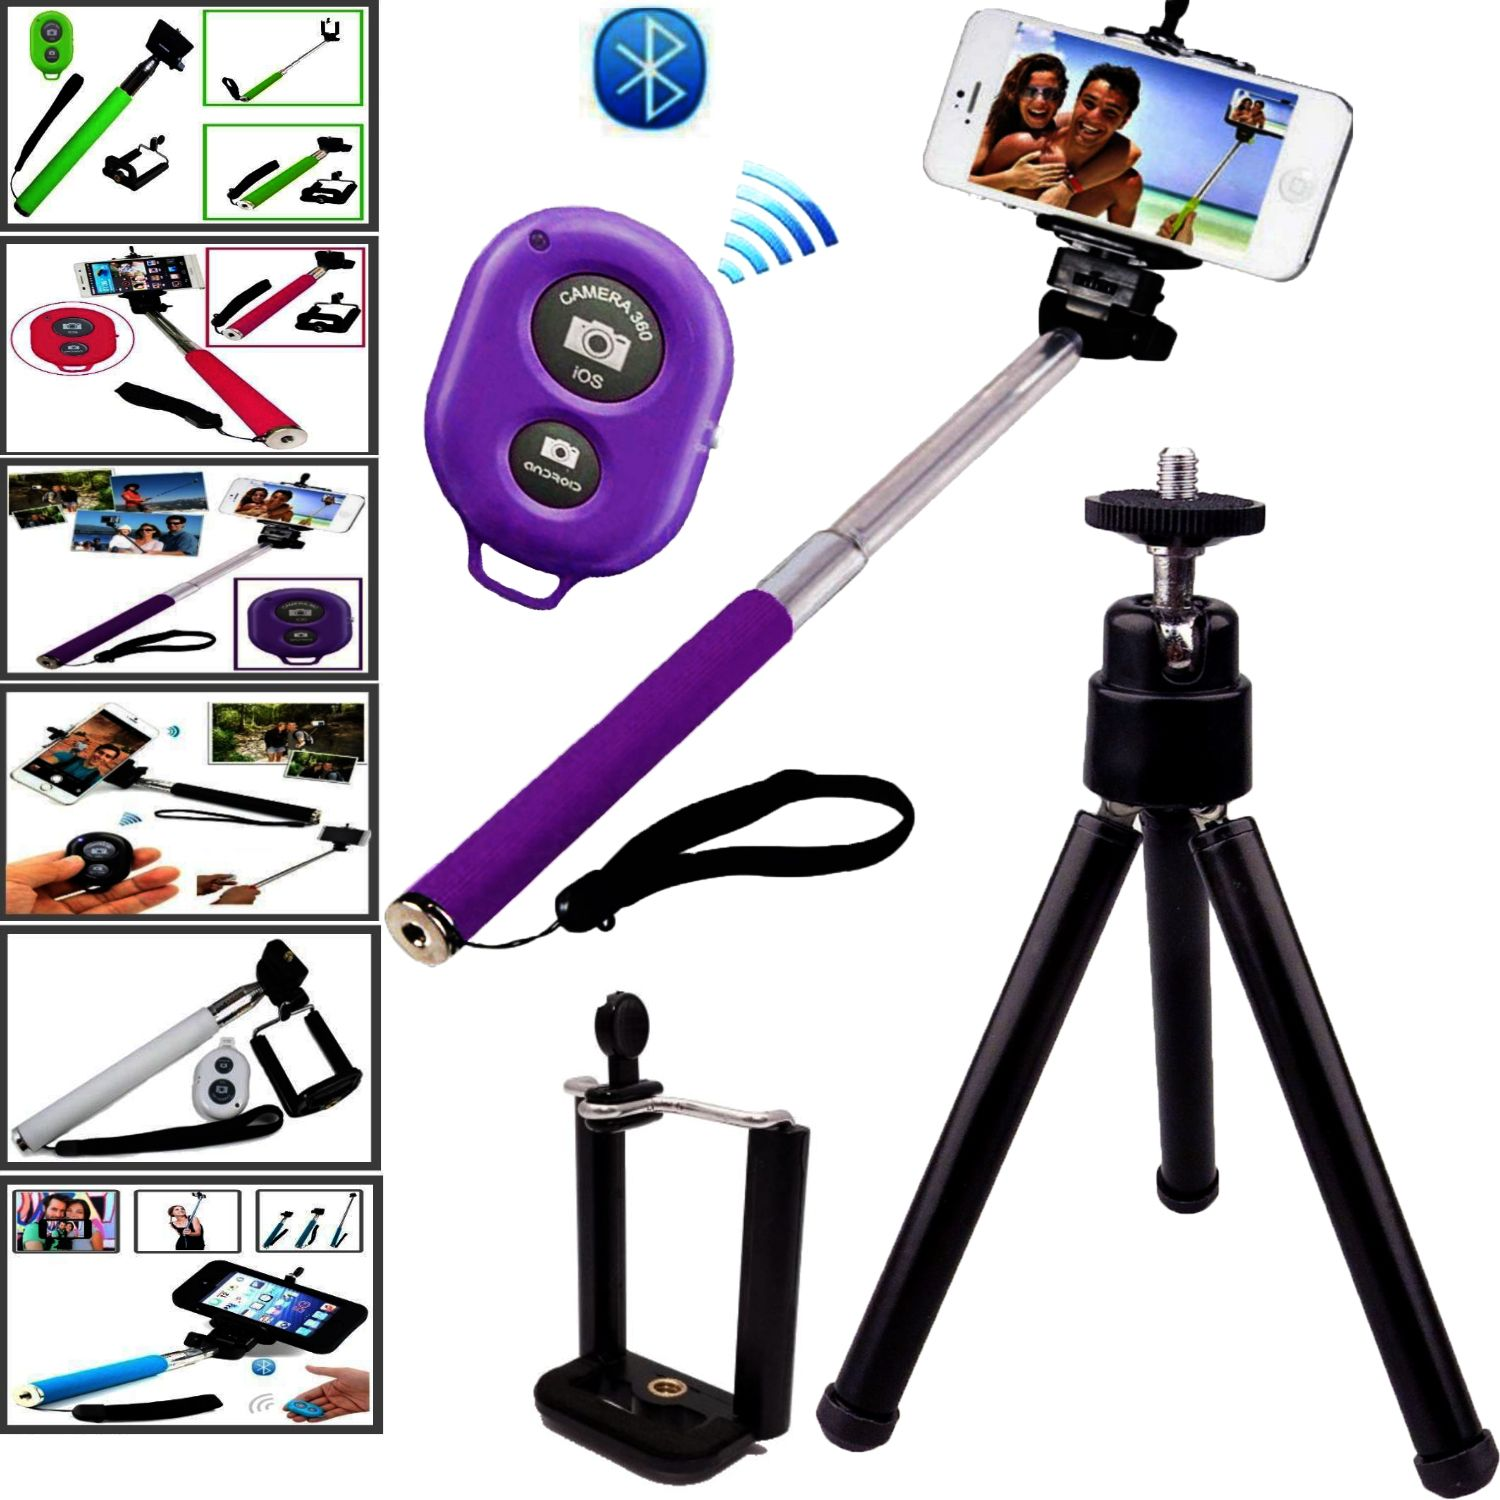 neu selfie stick monopod selbstausloser griff knopf stativ fur neu handys. Black Bedroom Furniture Sets. Home Design Ideas